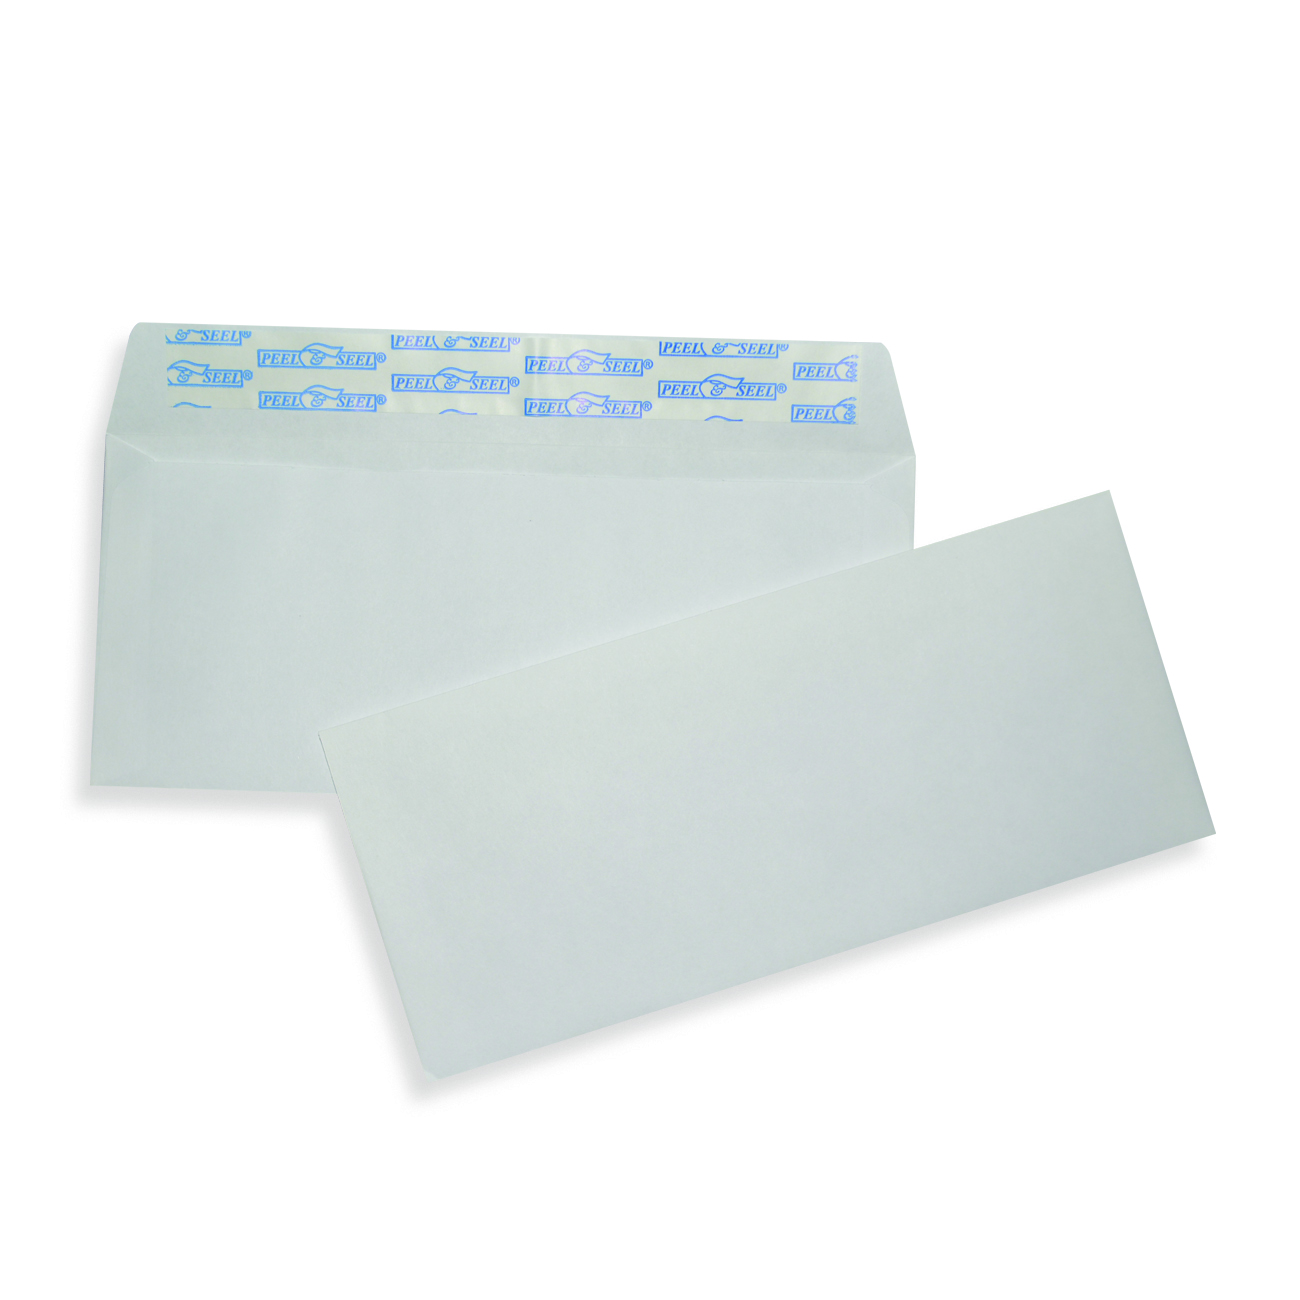 "White Wove Business Envelopes 4 1/8"" x 9 1/2"", #10, 24 lb. White Wove Commercial Envelope, Pull & Close, 500/BX"